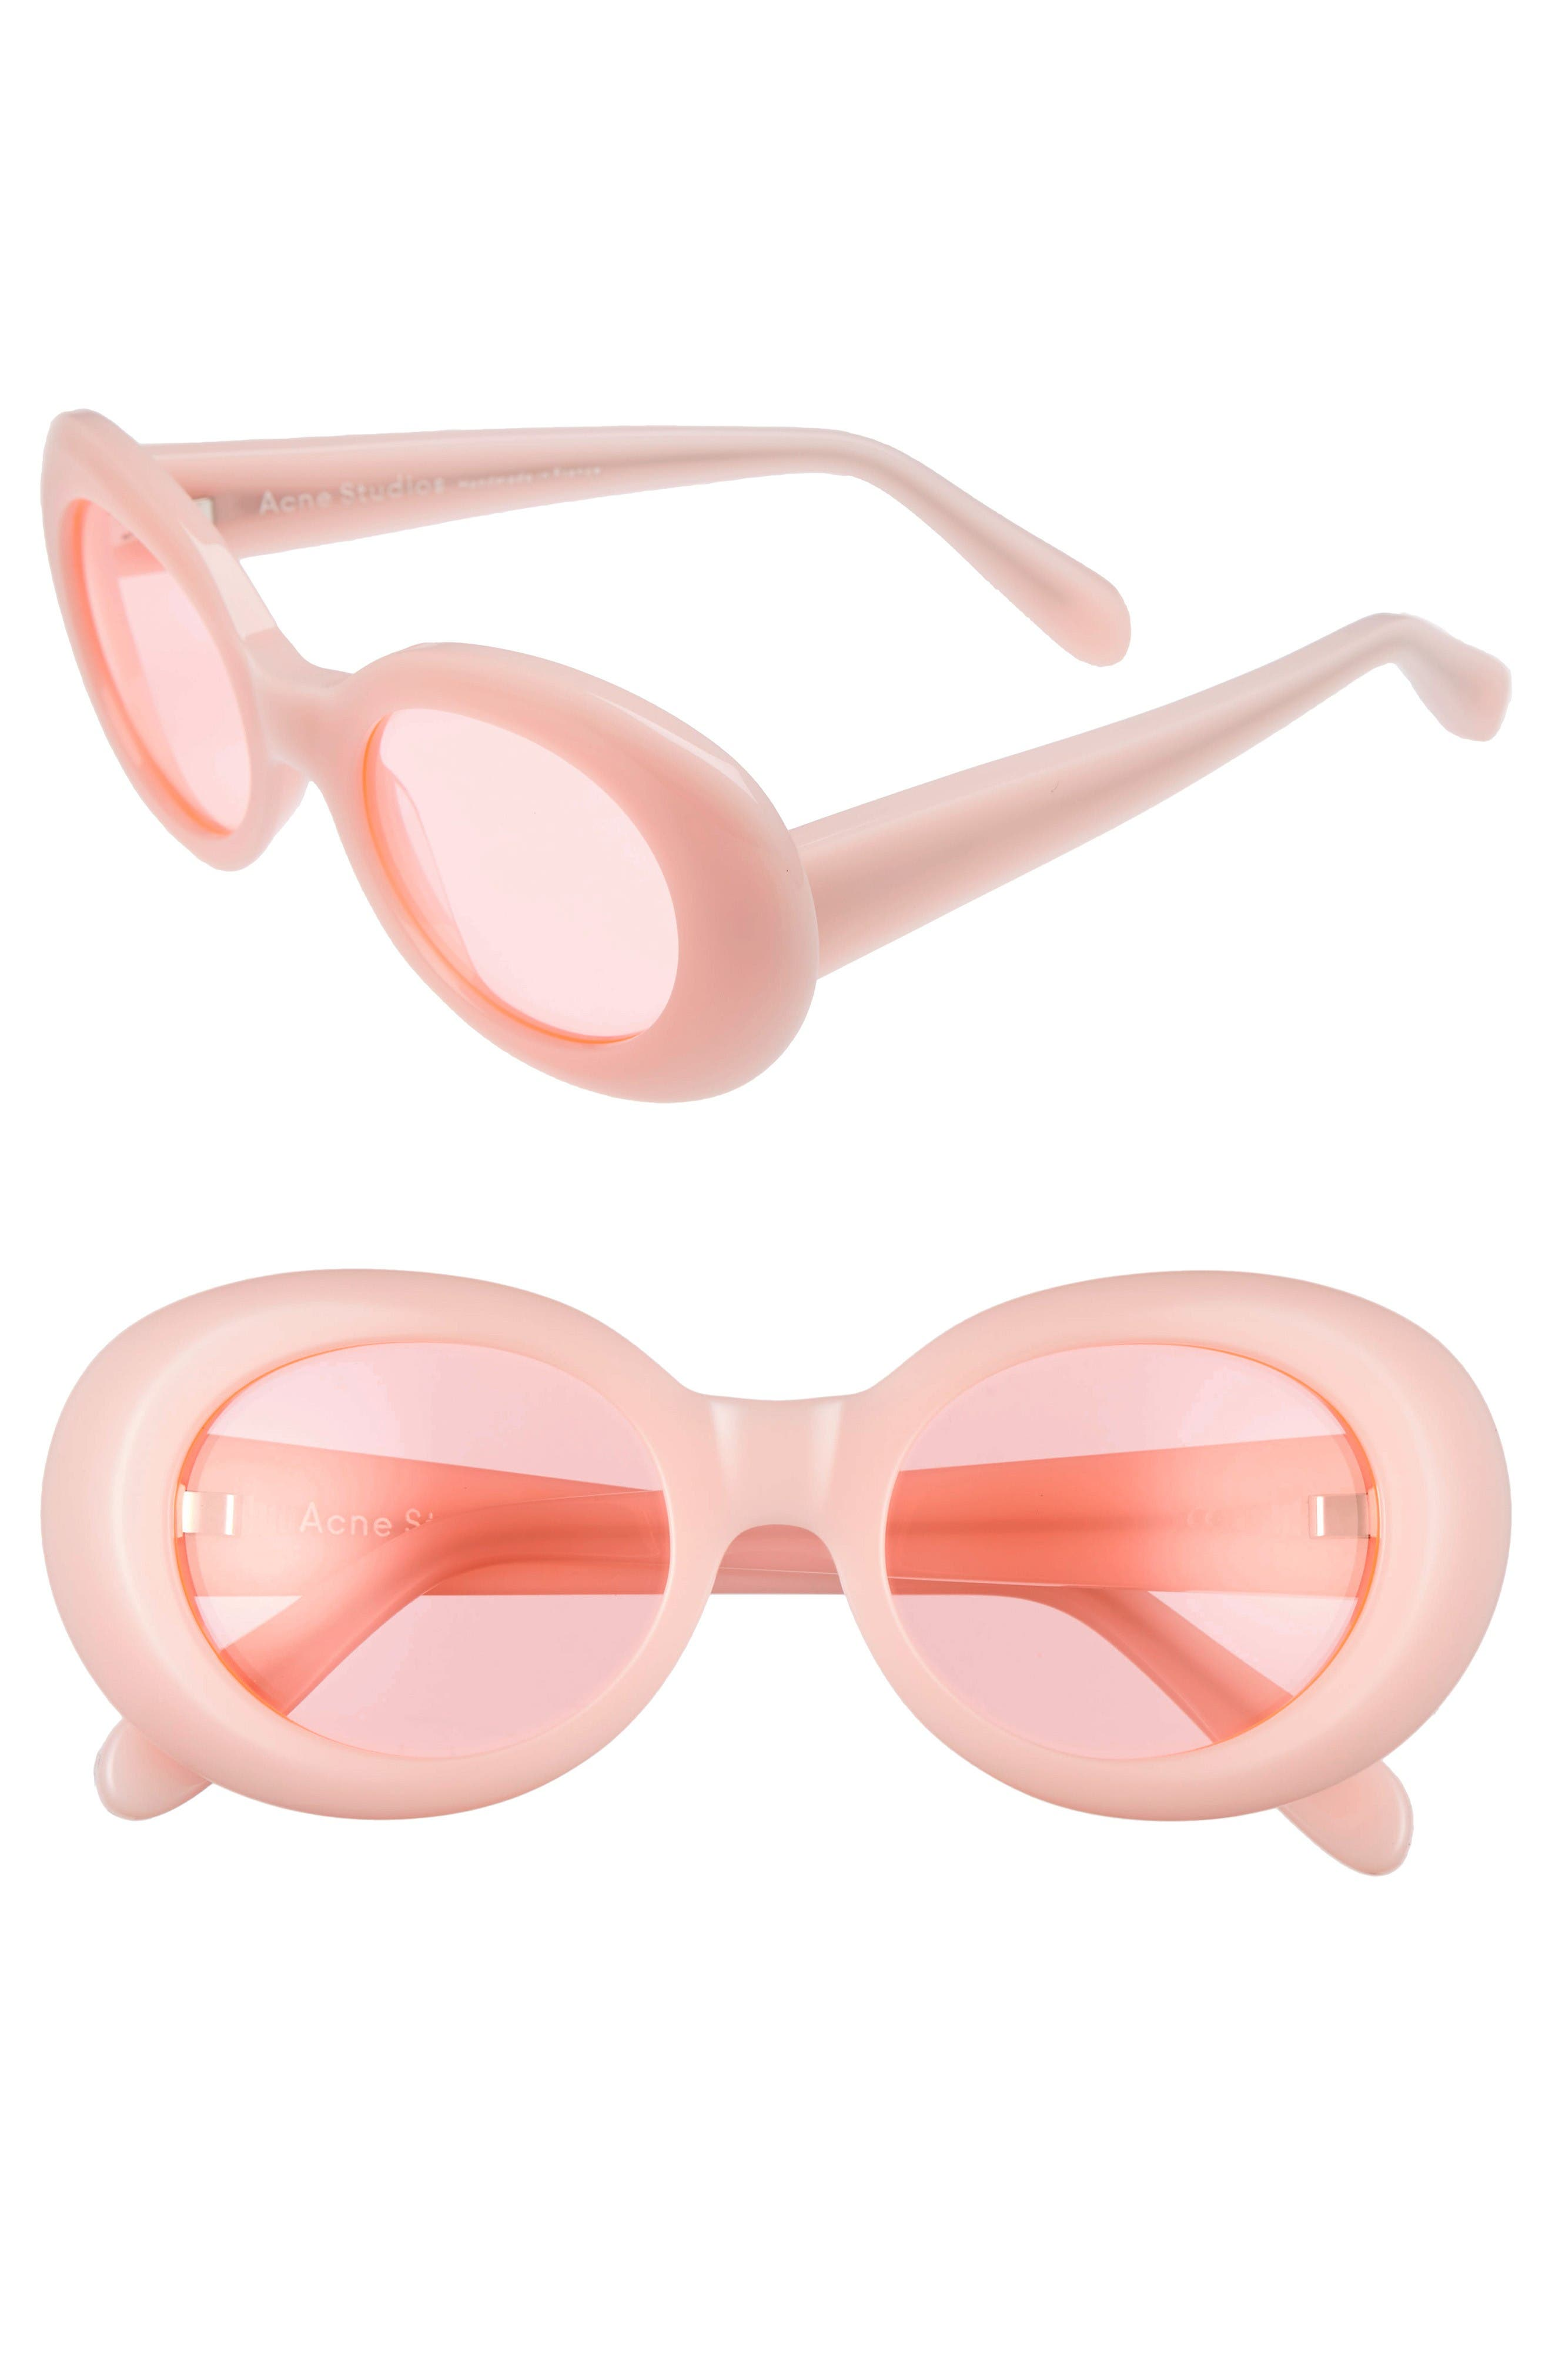 Alternate Image 1 Selected - ACNE Studios Mustang 47mm Oval Sunglasses